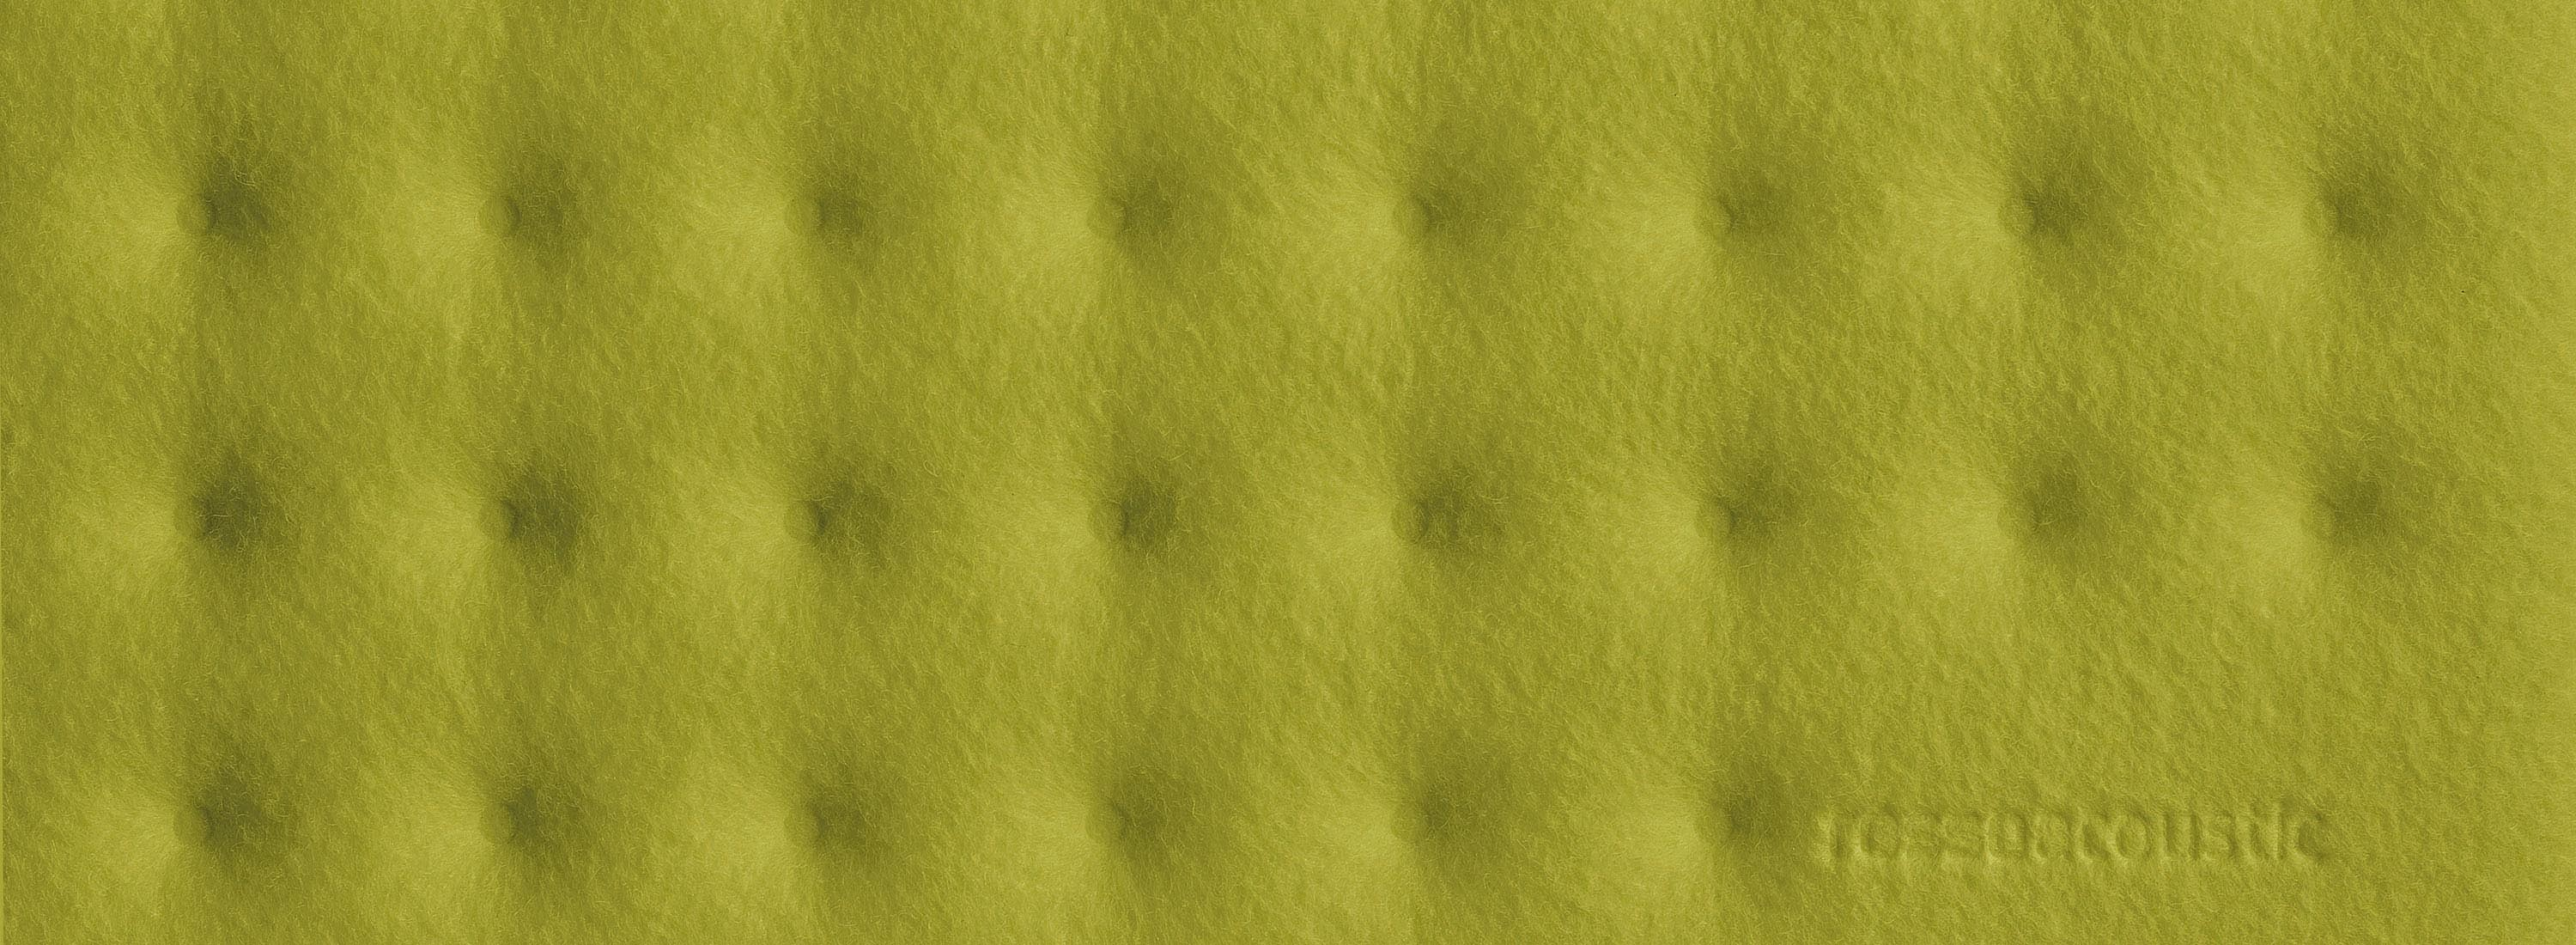 Rossoacoustic PAD Q 600 Plus, 600 x 600 x 60 mm, soft moss